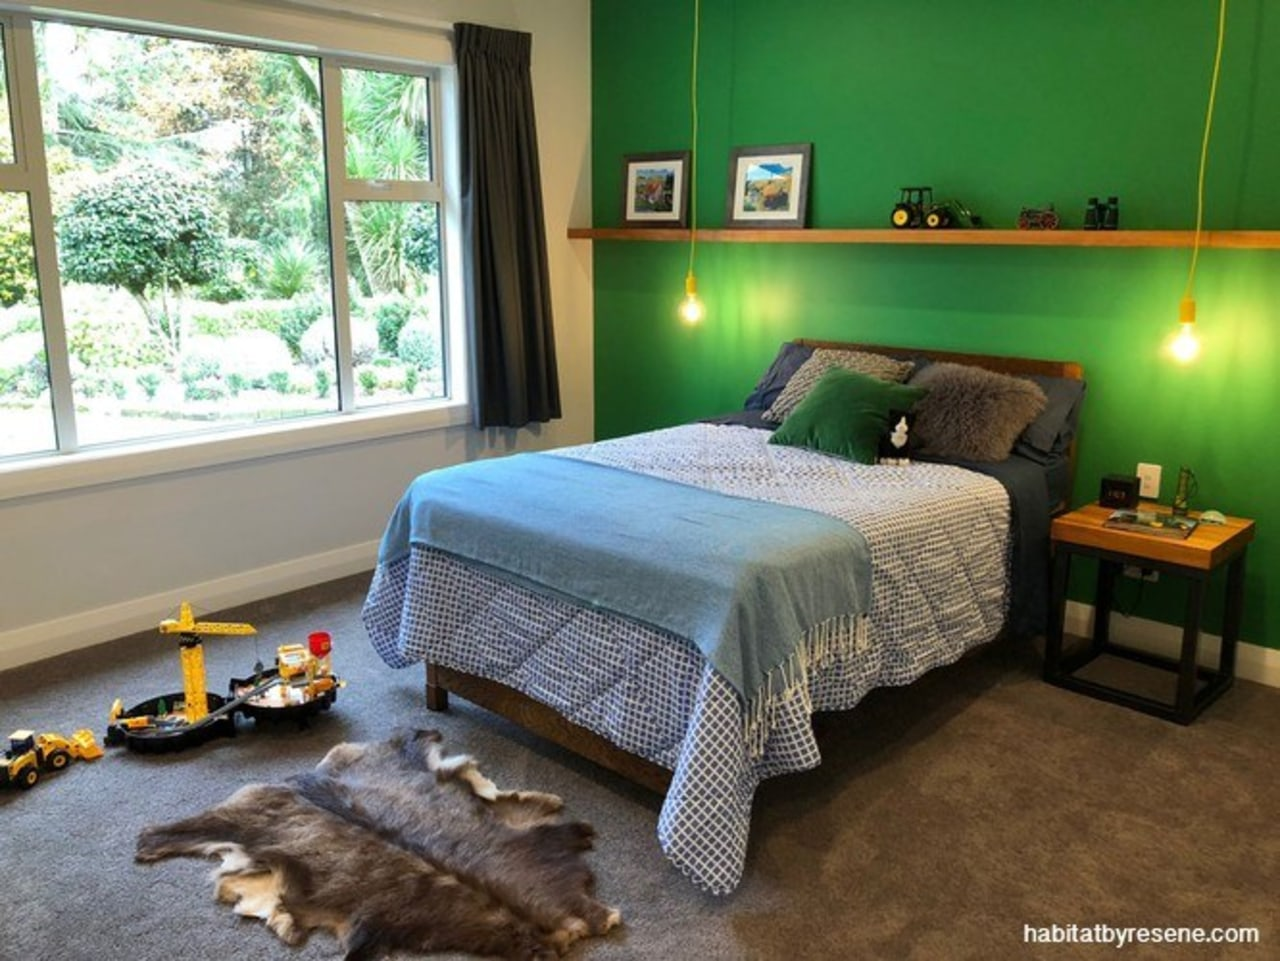 Five-year-old Tom wanted to bring the John Deere bed, bed frame, bed sheet, bedding, bedroom, building, ceiling, duvet cover, floor, flooring, furniture, green, hardwood, home, house, interior design, linens, mattress, nightstand, property, real estate, room, textile, wall, wood, green